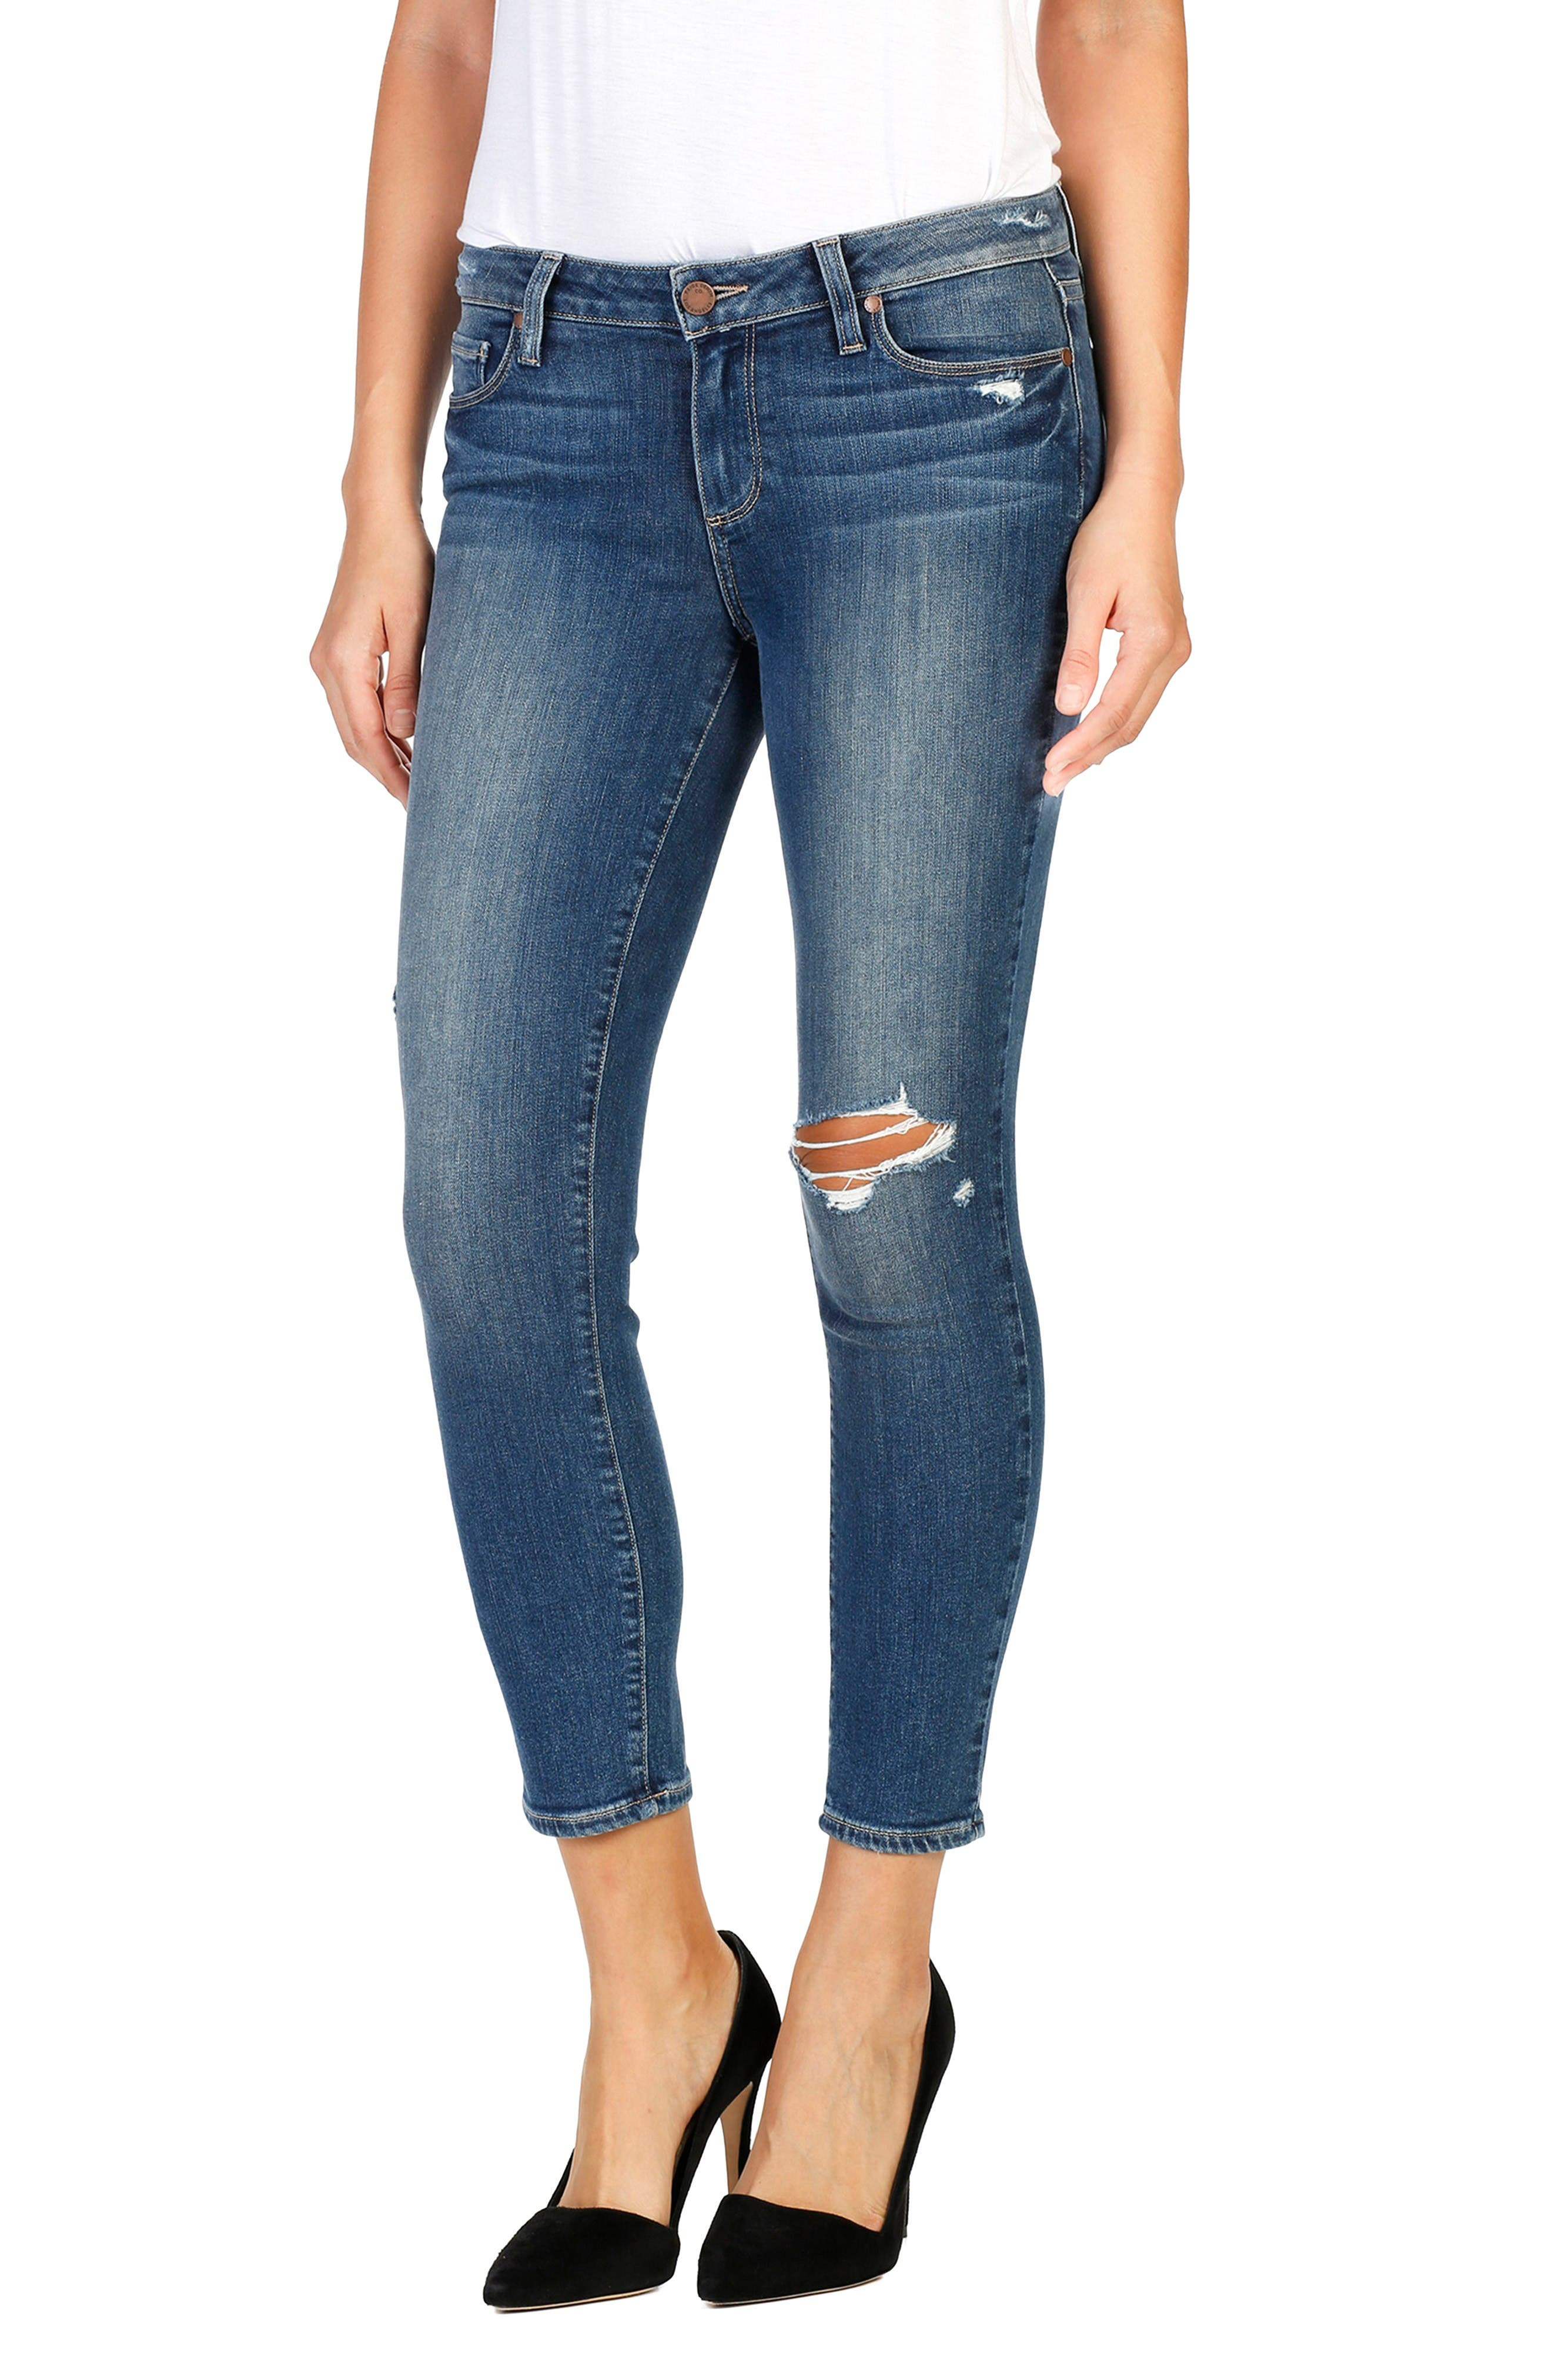 Verdugo Crop Skinny Jeans,                             Main thumbnail 1, color,                             Ramona Destructed